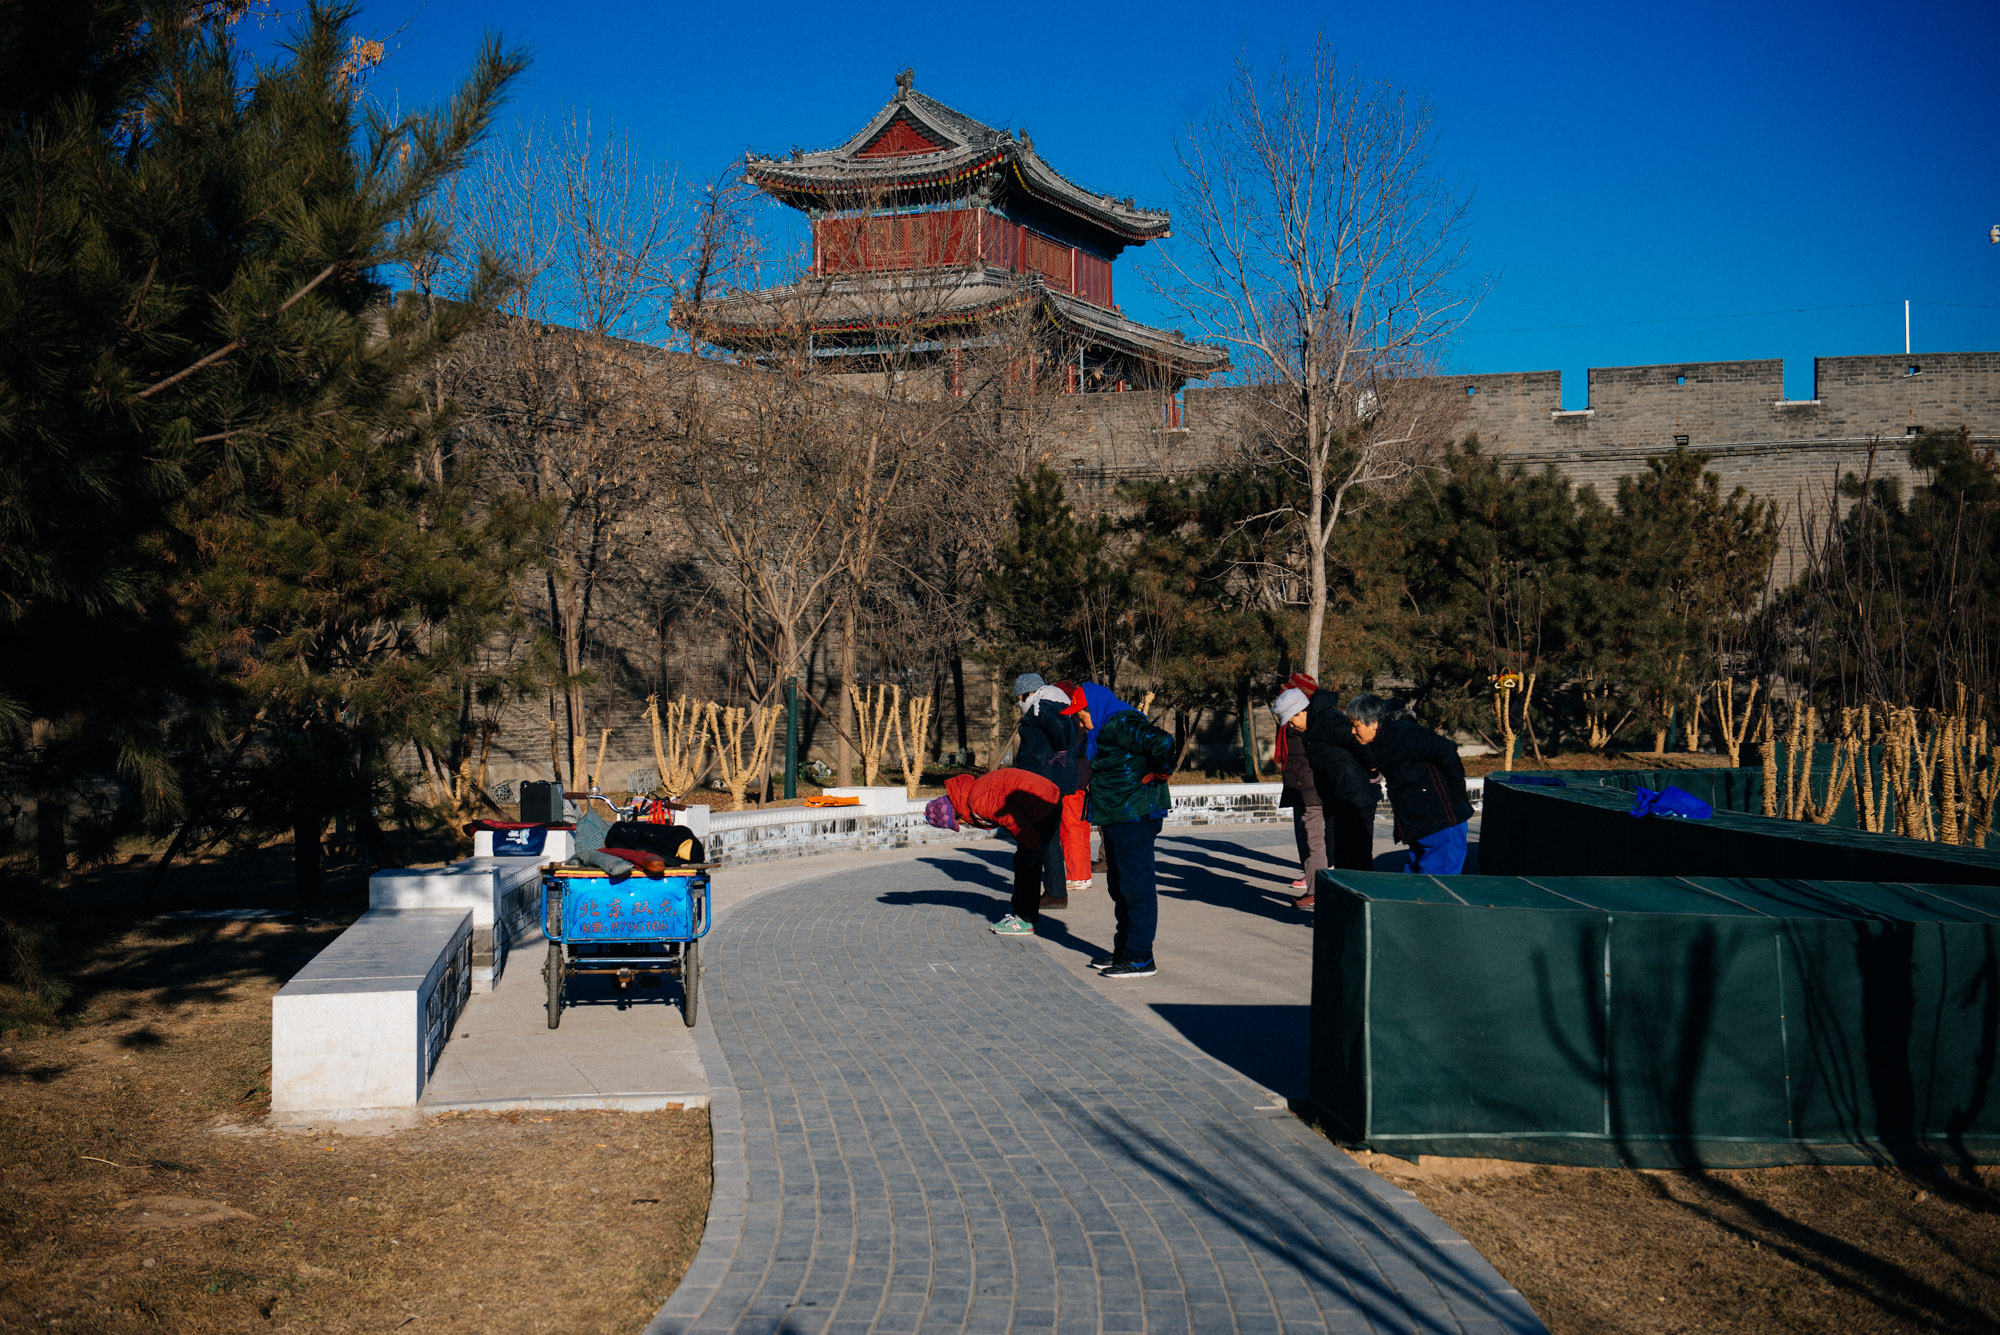 It was a very cold winter morning that day. At 8 am a group of senior citizens danced to a song outside Wanping fortress.